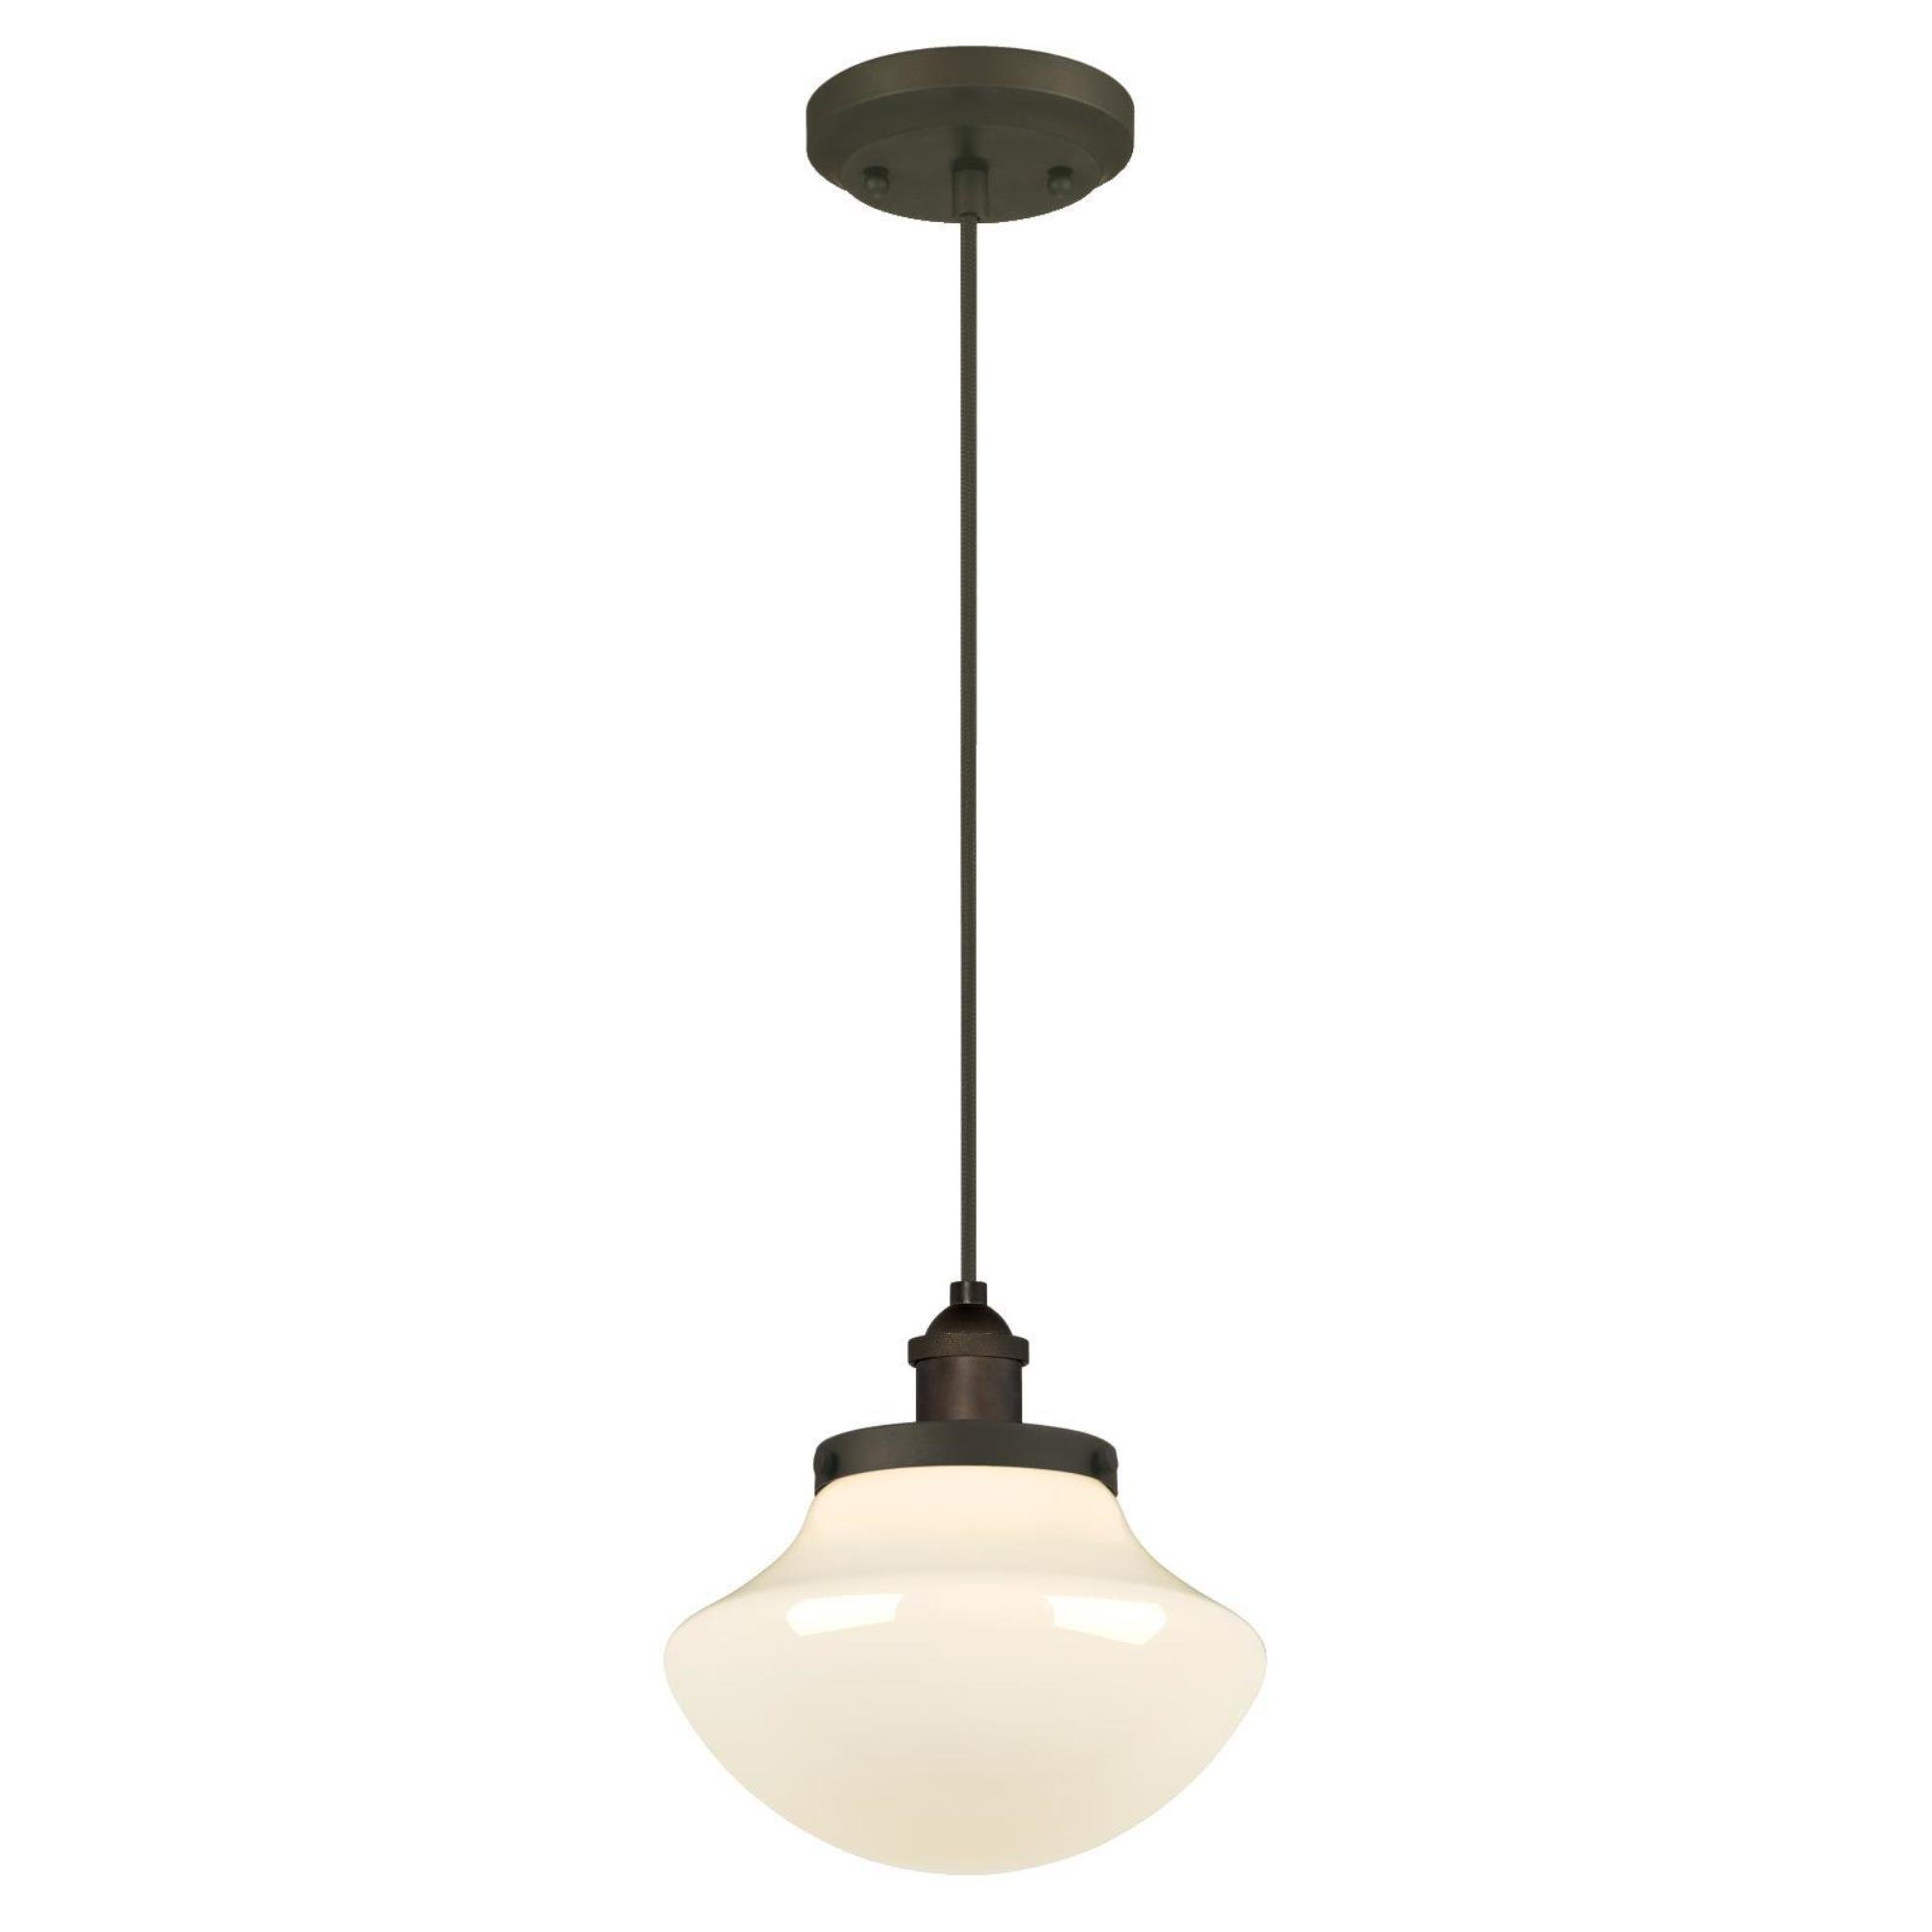 Westinghouse 6346200 One-Light Mini Pendant with White Opal Glass, Oil Rubbed Bronze